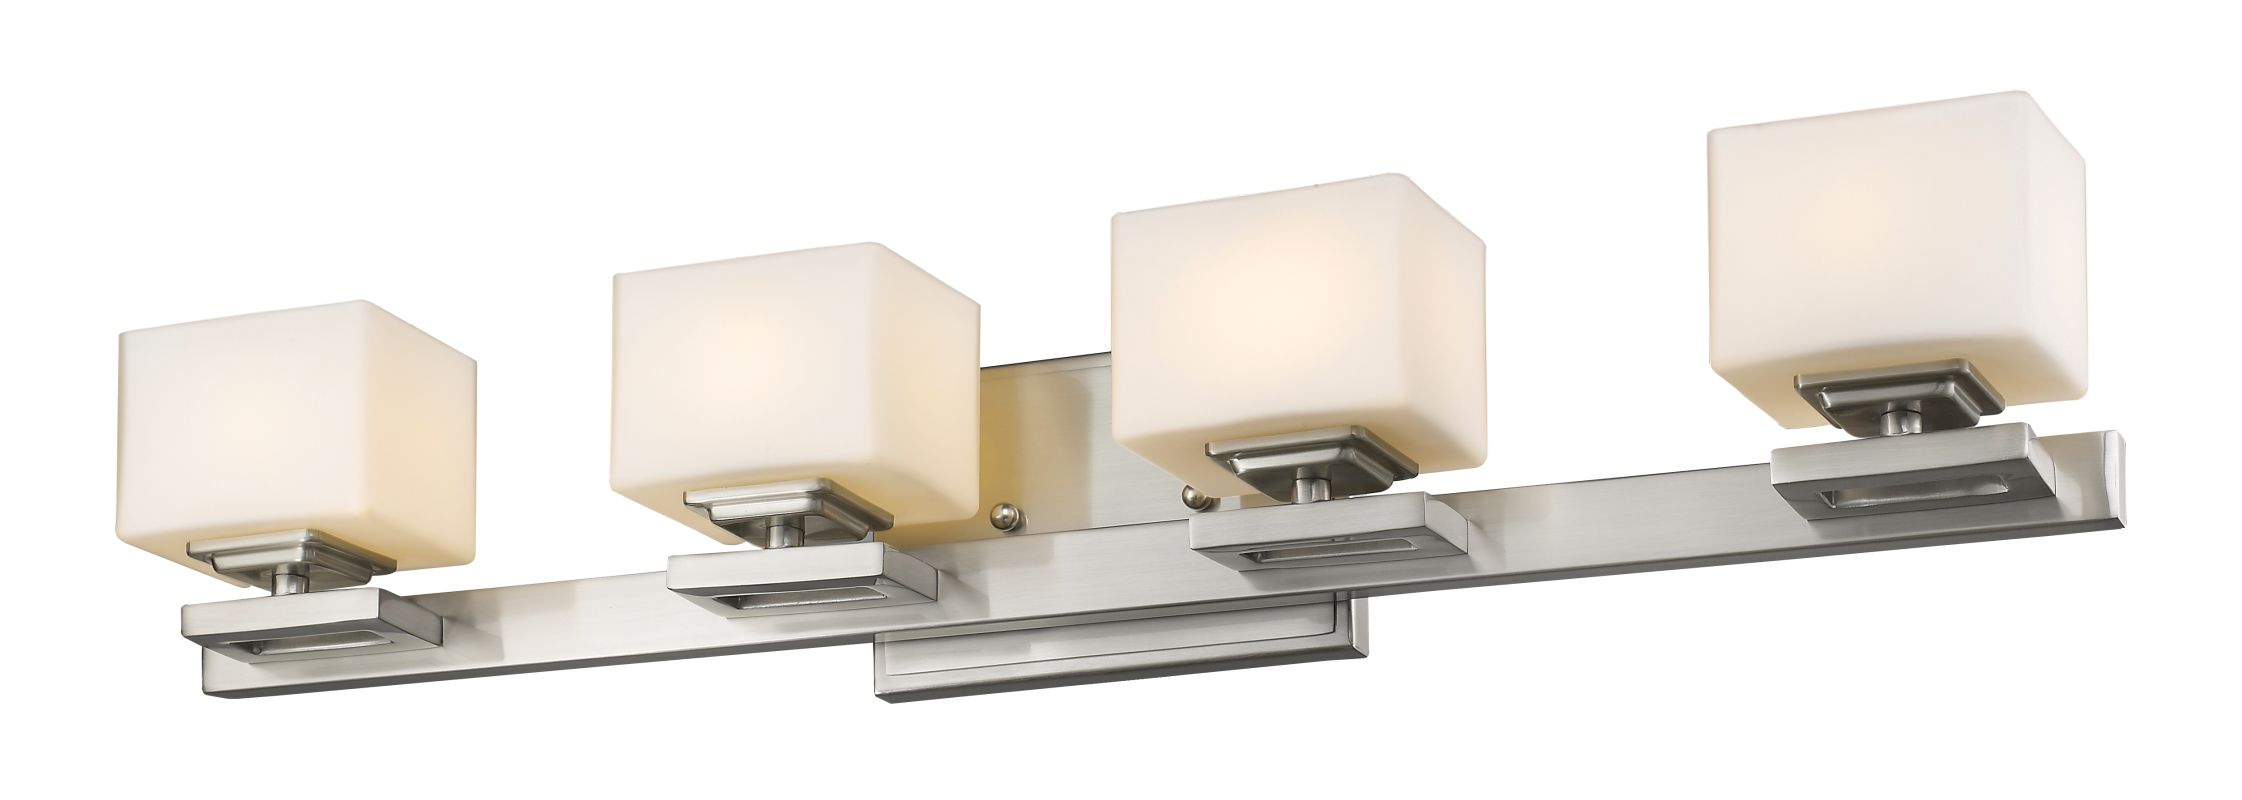 Z-Lite 1914-4V Cuvier 4 Light Bathroom Vanity Fixture Brushed Nickel